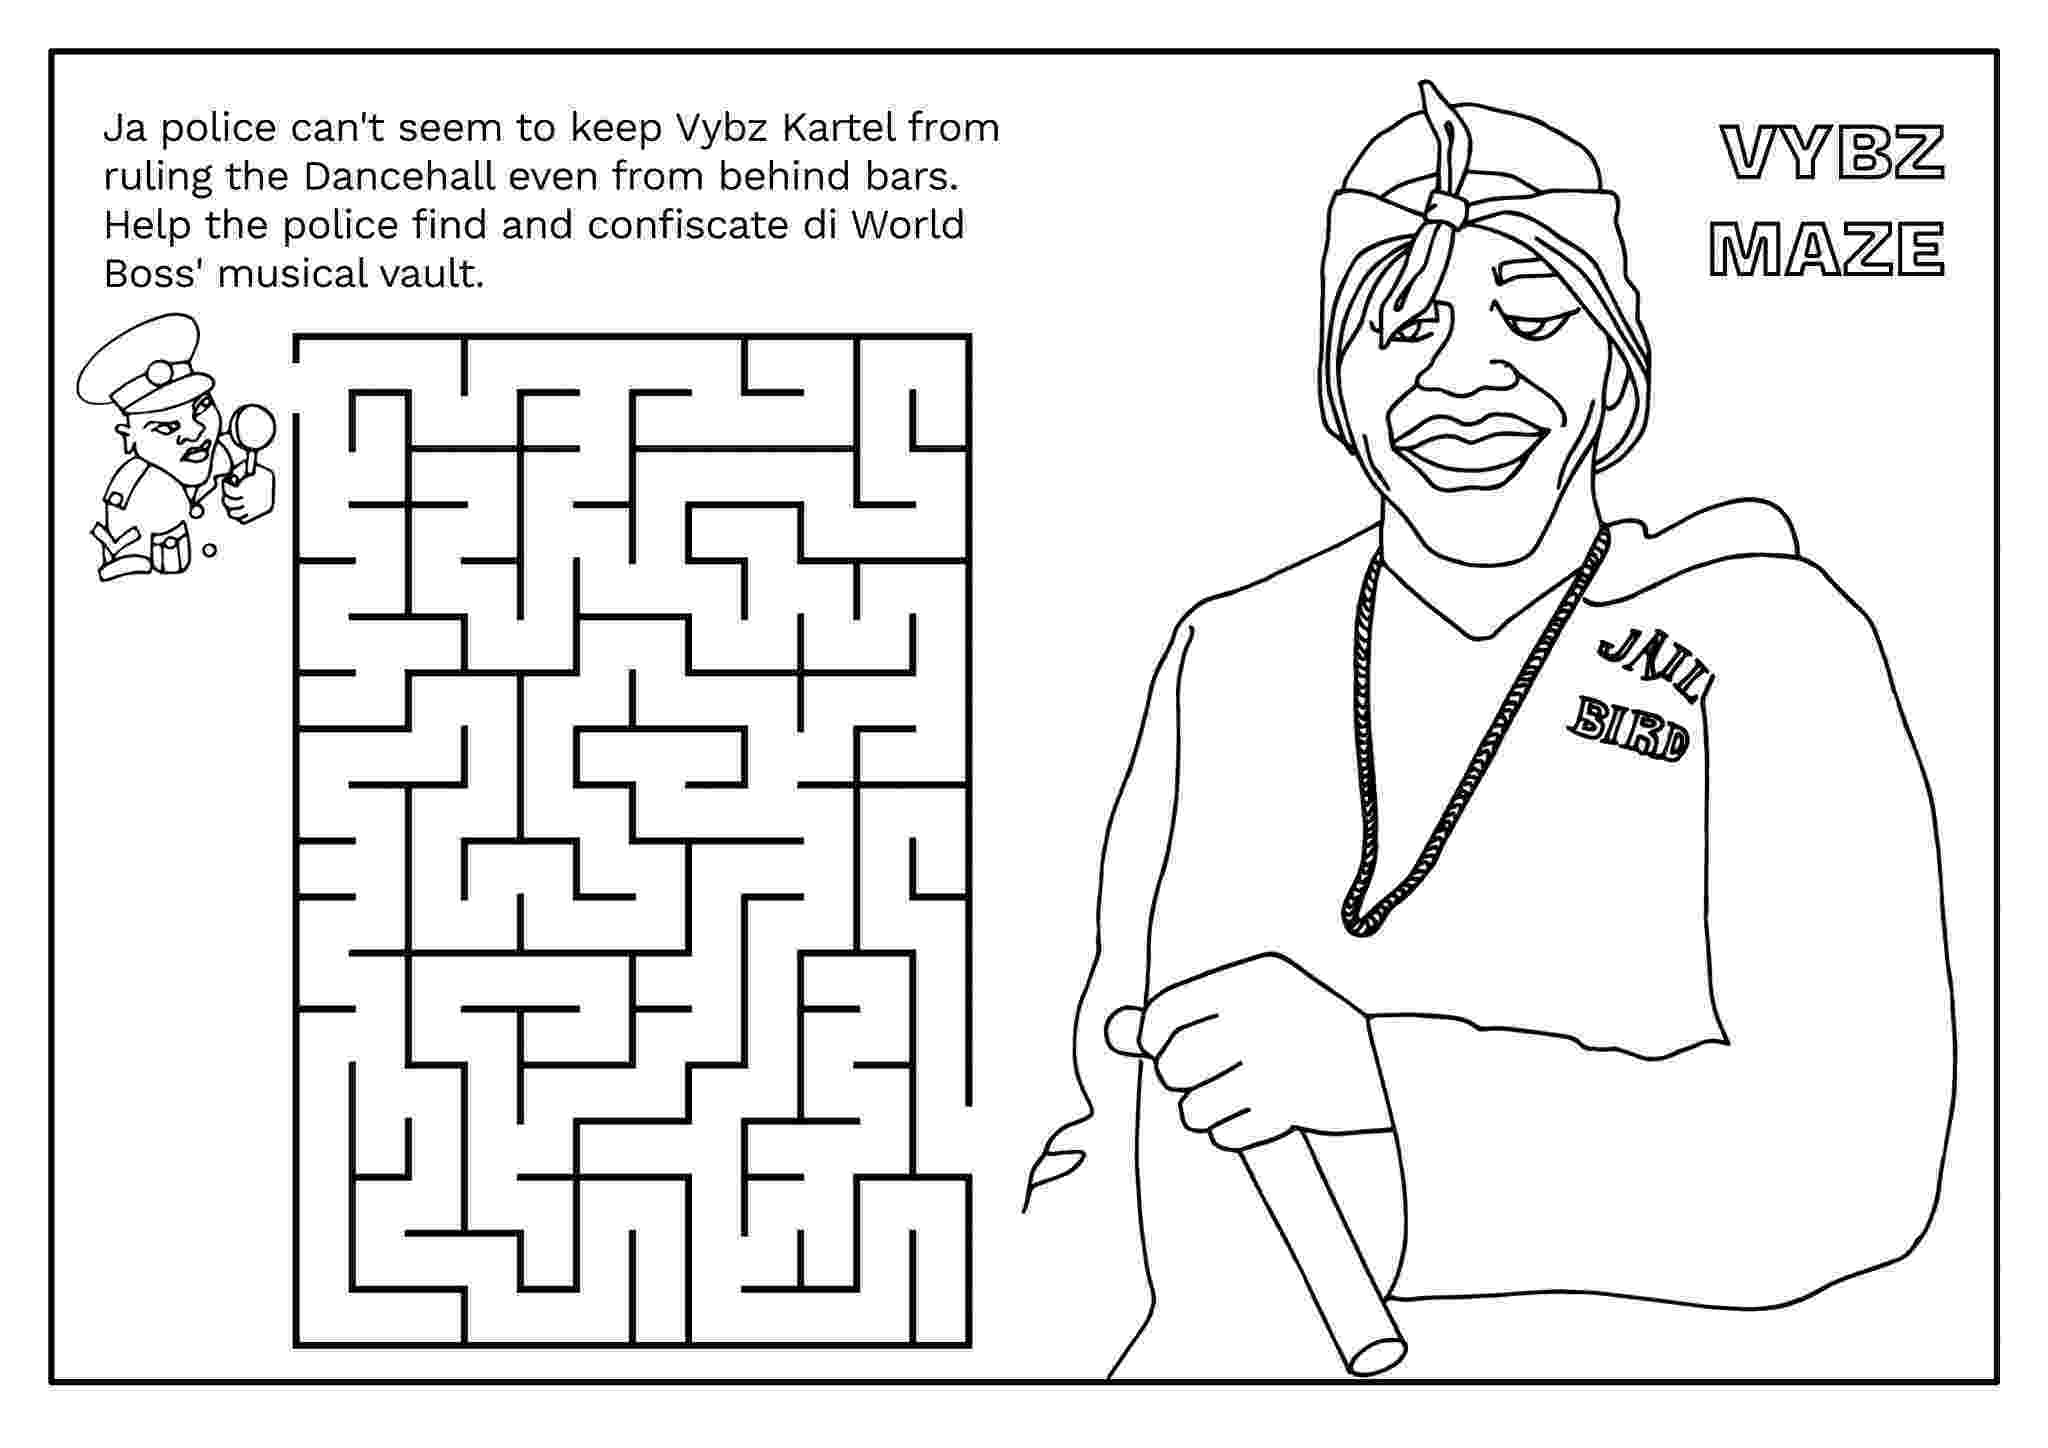 vybz kartel coloring book download hulk visual culture colouring dancehall with illustrator robin kartel vybz book hulk download coloring